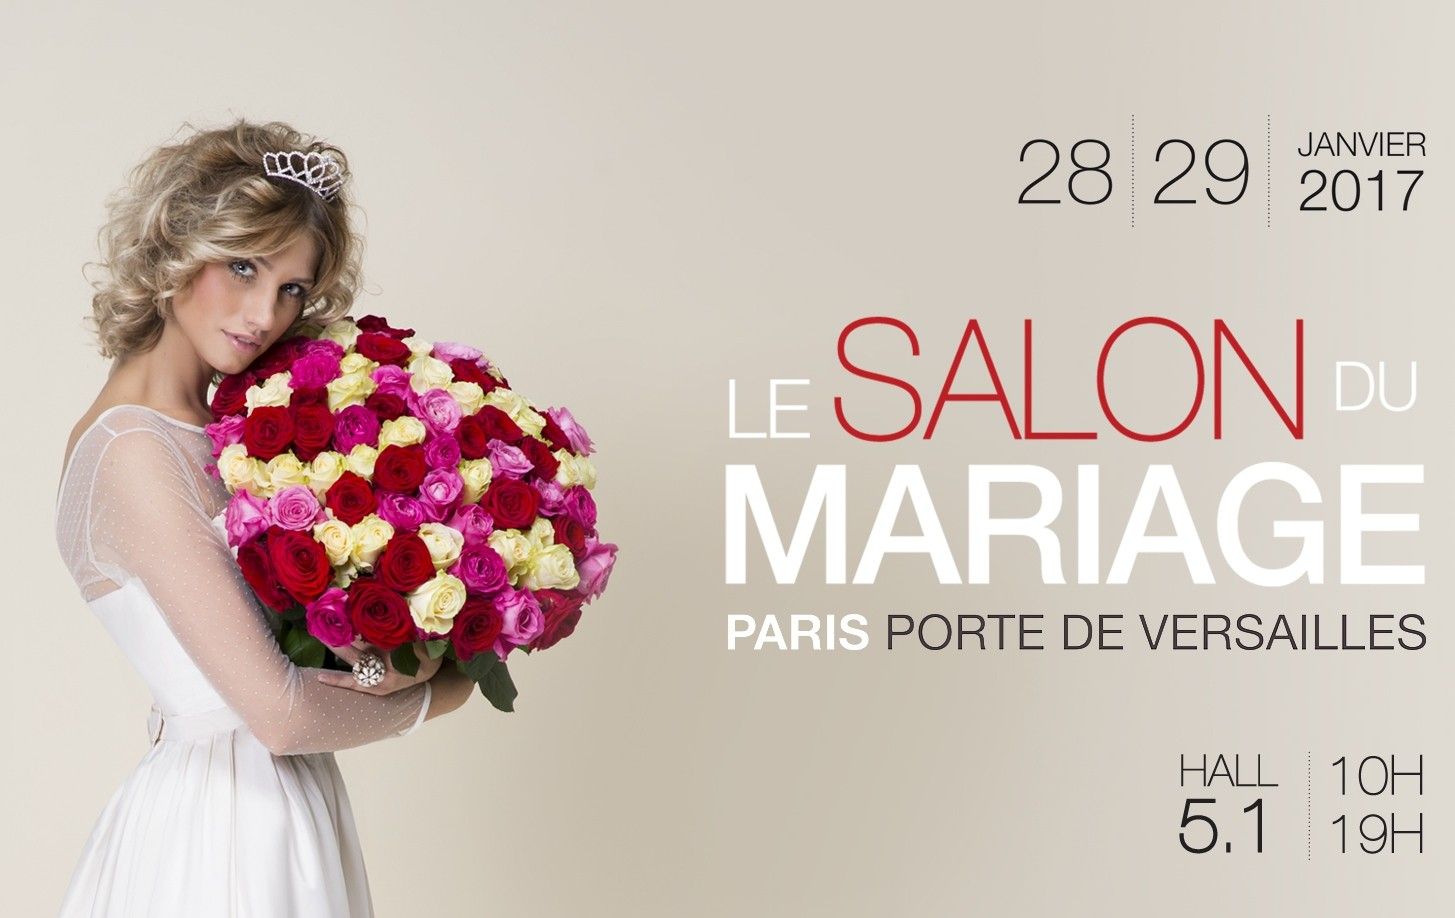 Salon du mariage paris cymbeline robes de mari e for Salon de paris 2017